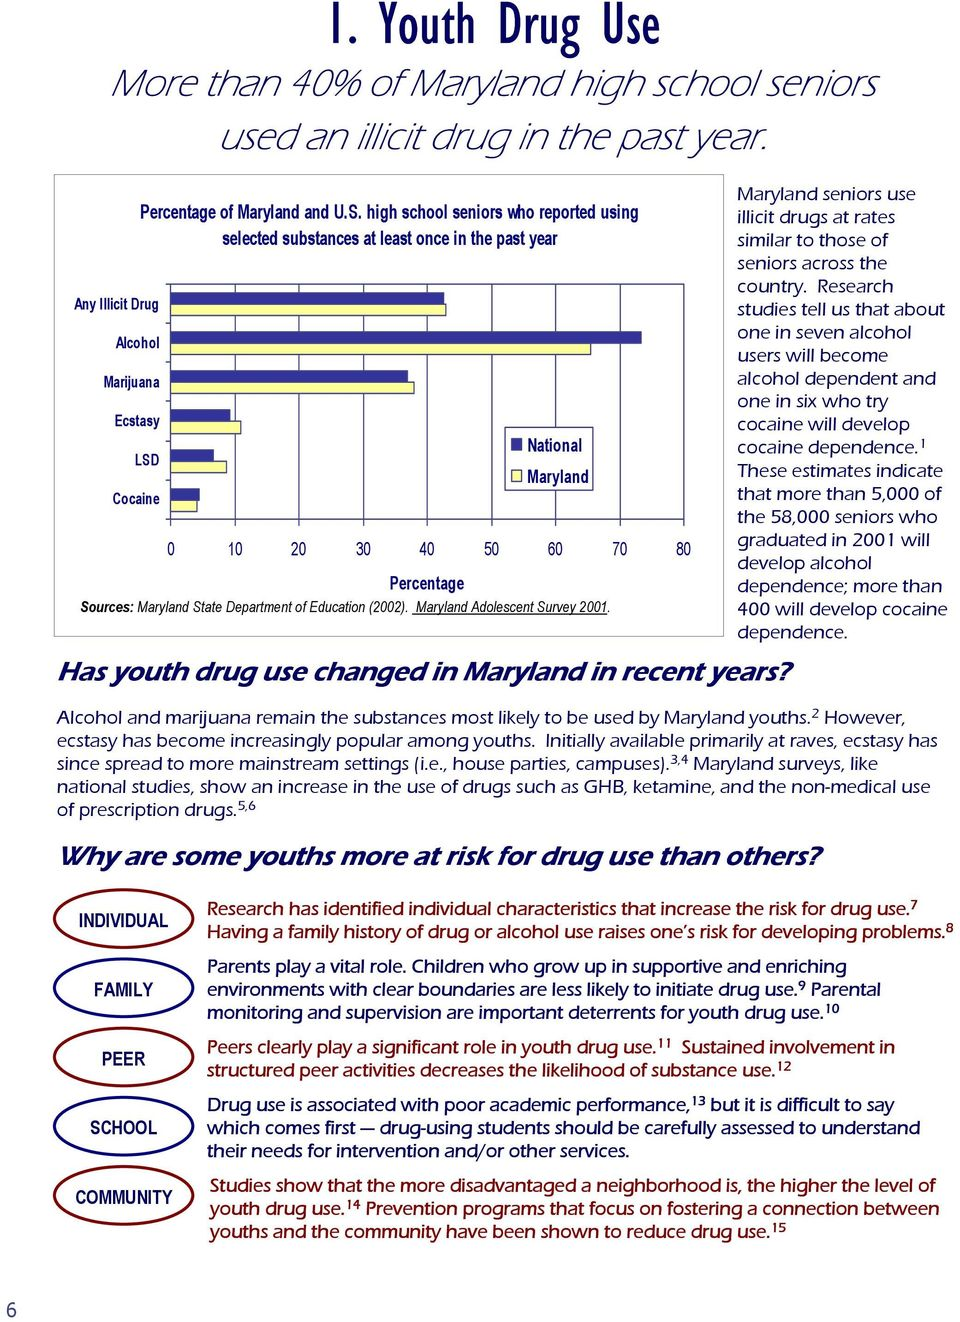 Maryland Adolescent Survey 21. Maryland seniors use illicit drugs at rates similar to those of seniors across the country.